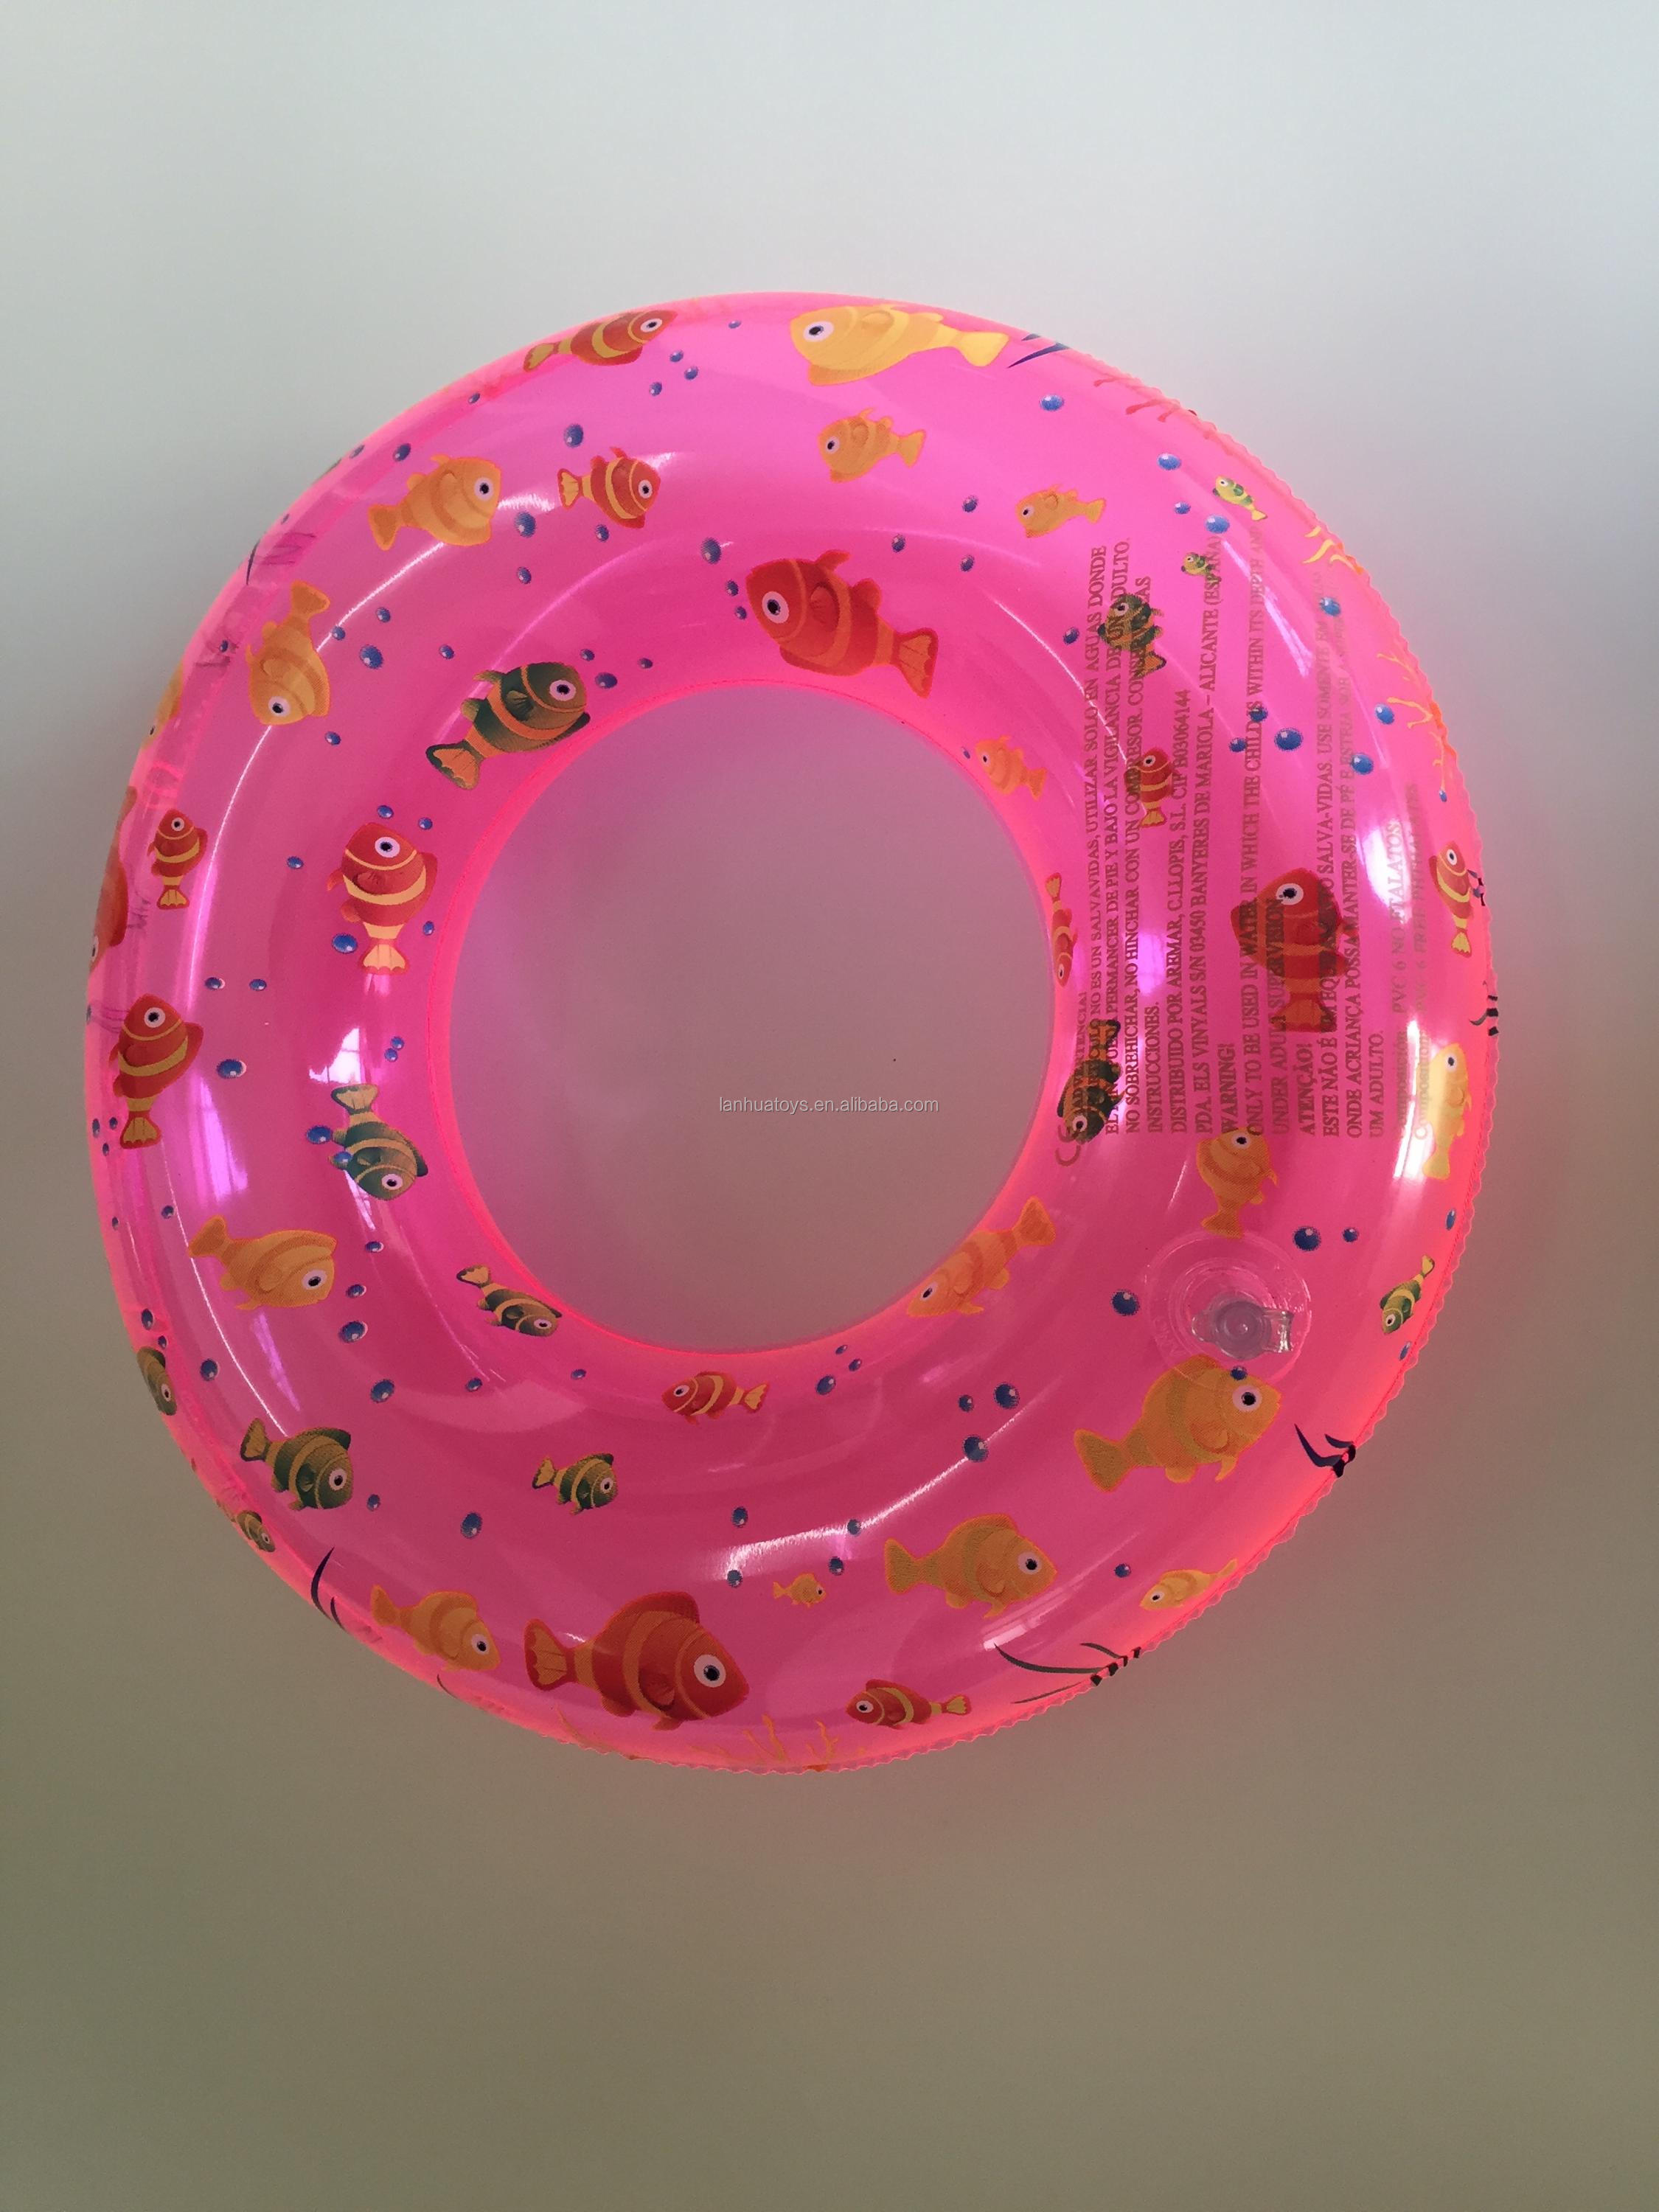 ICTI factory inflatable kids mini swimming ring